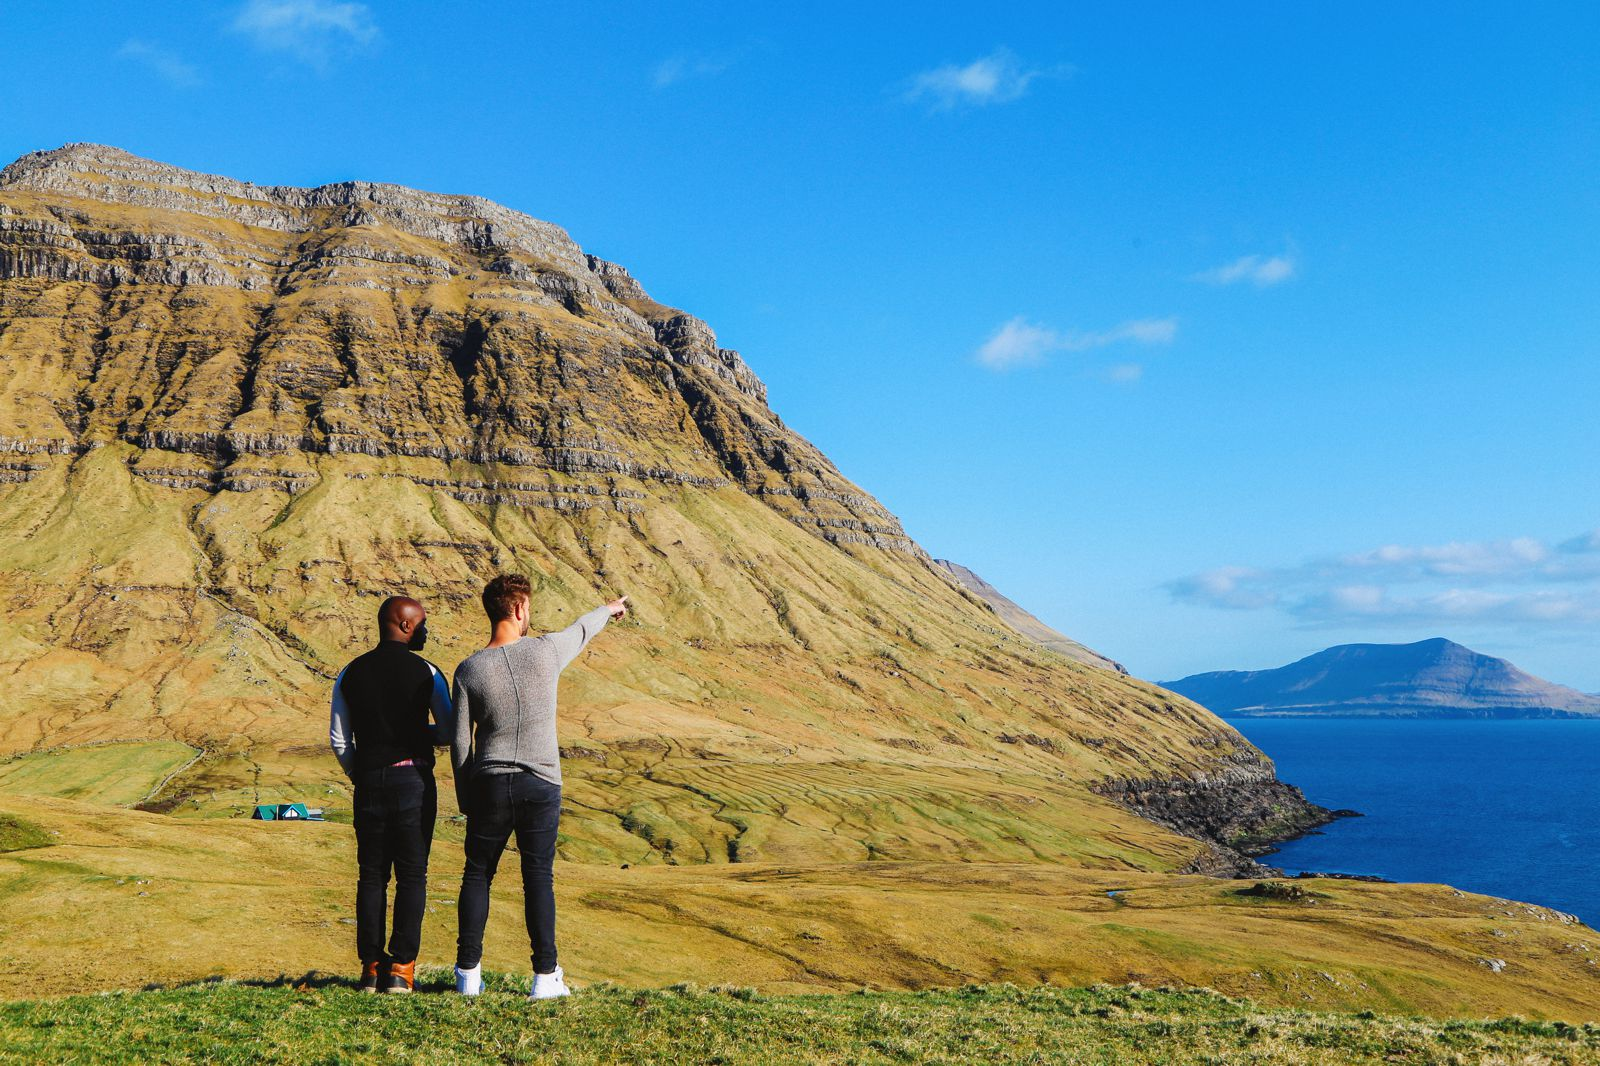 Explore The Beauty Of Caribbean: Your Complete Guide And Itinerary For Visiting The Faroe